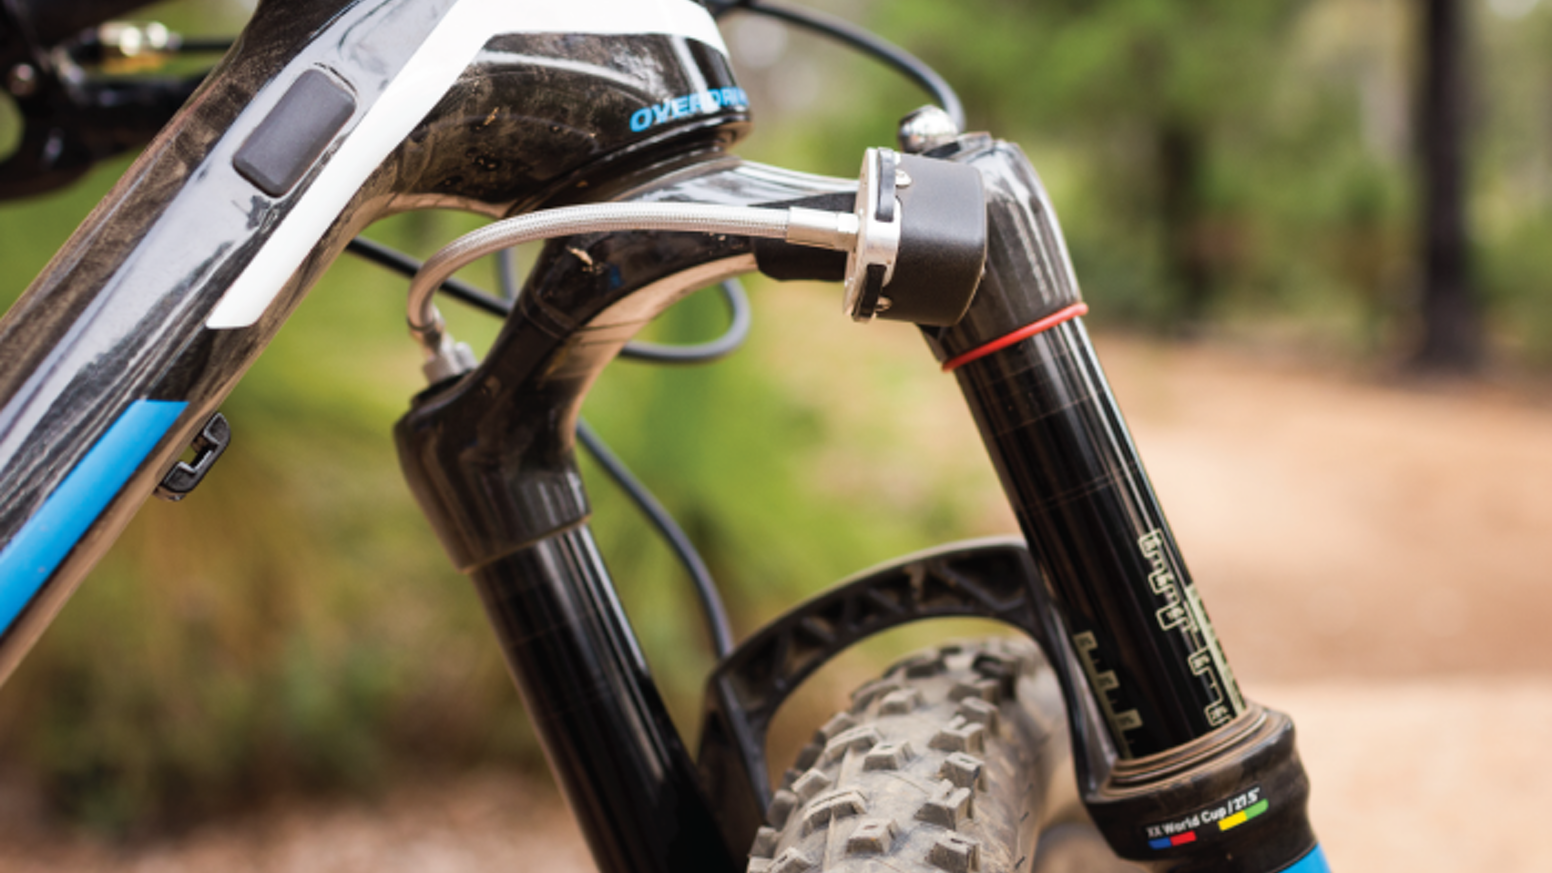 An innovative electronic gadget that automatically creates tuning recommendations for your bike suspension, while you ride.